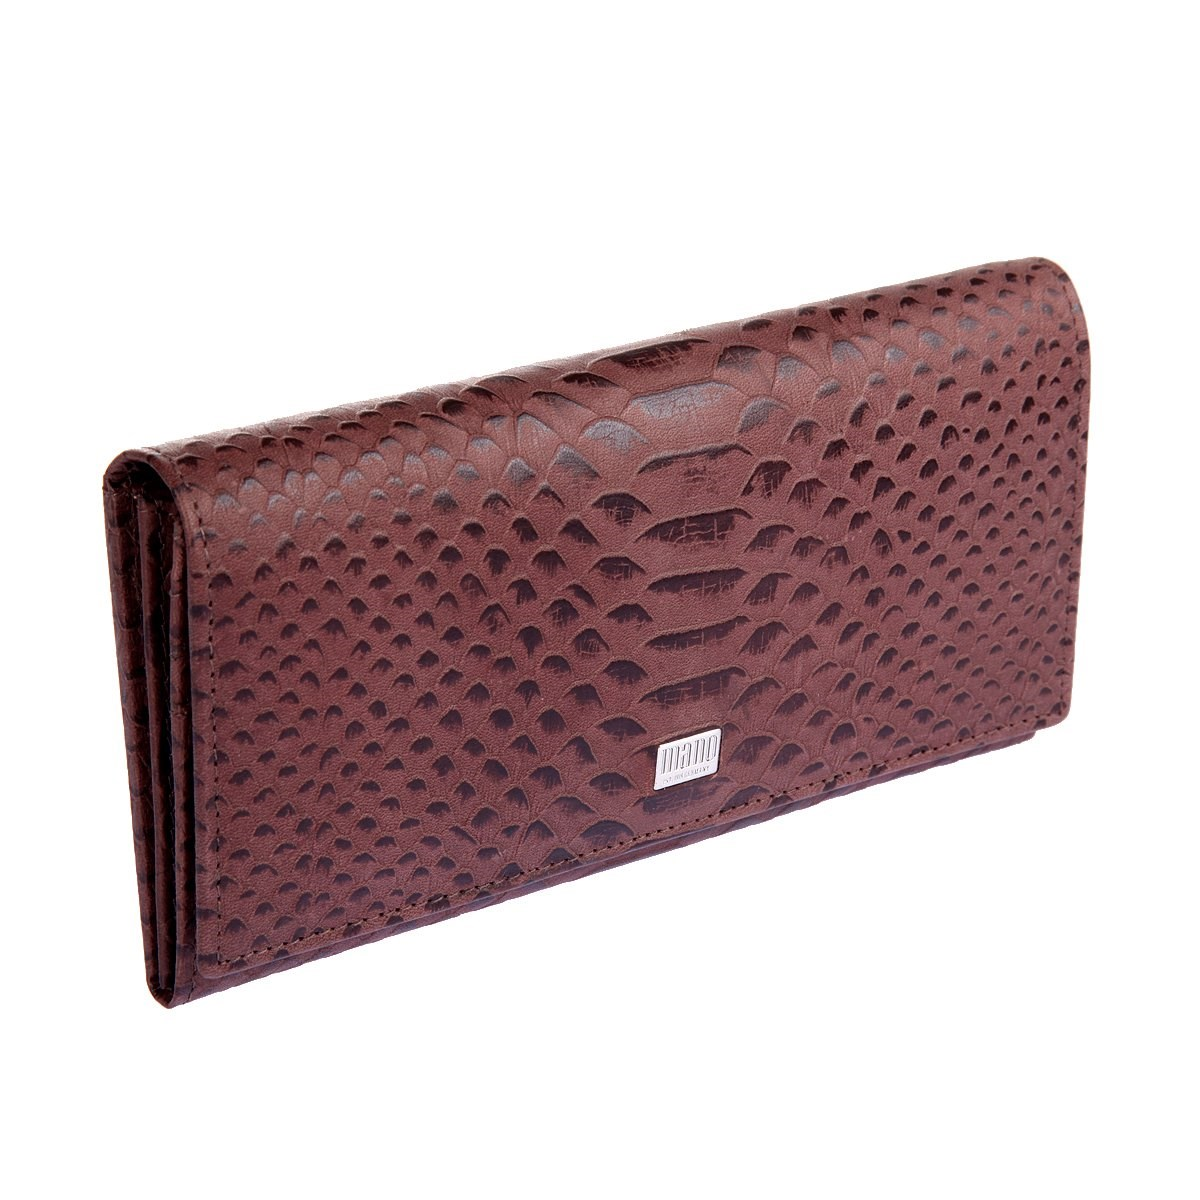 Coin Purse Mano 20150 Croco Brown портмоне mano business 19008 19008 brown